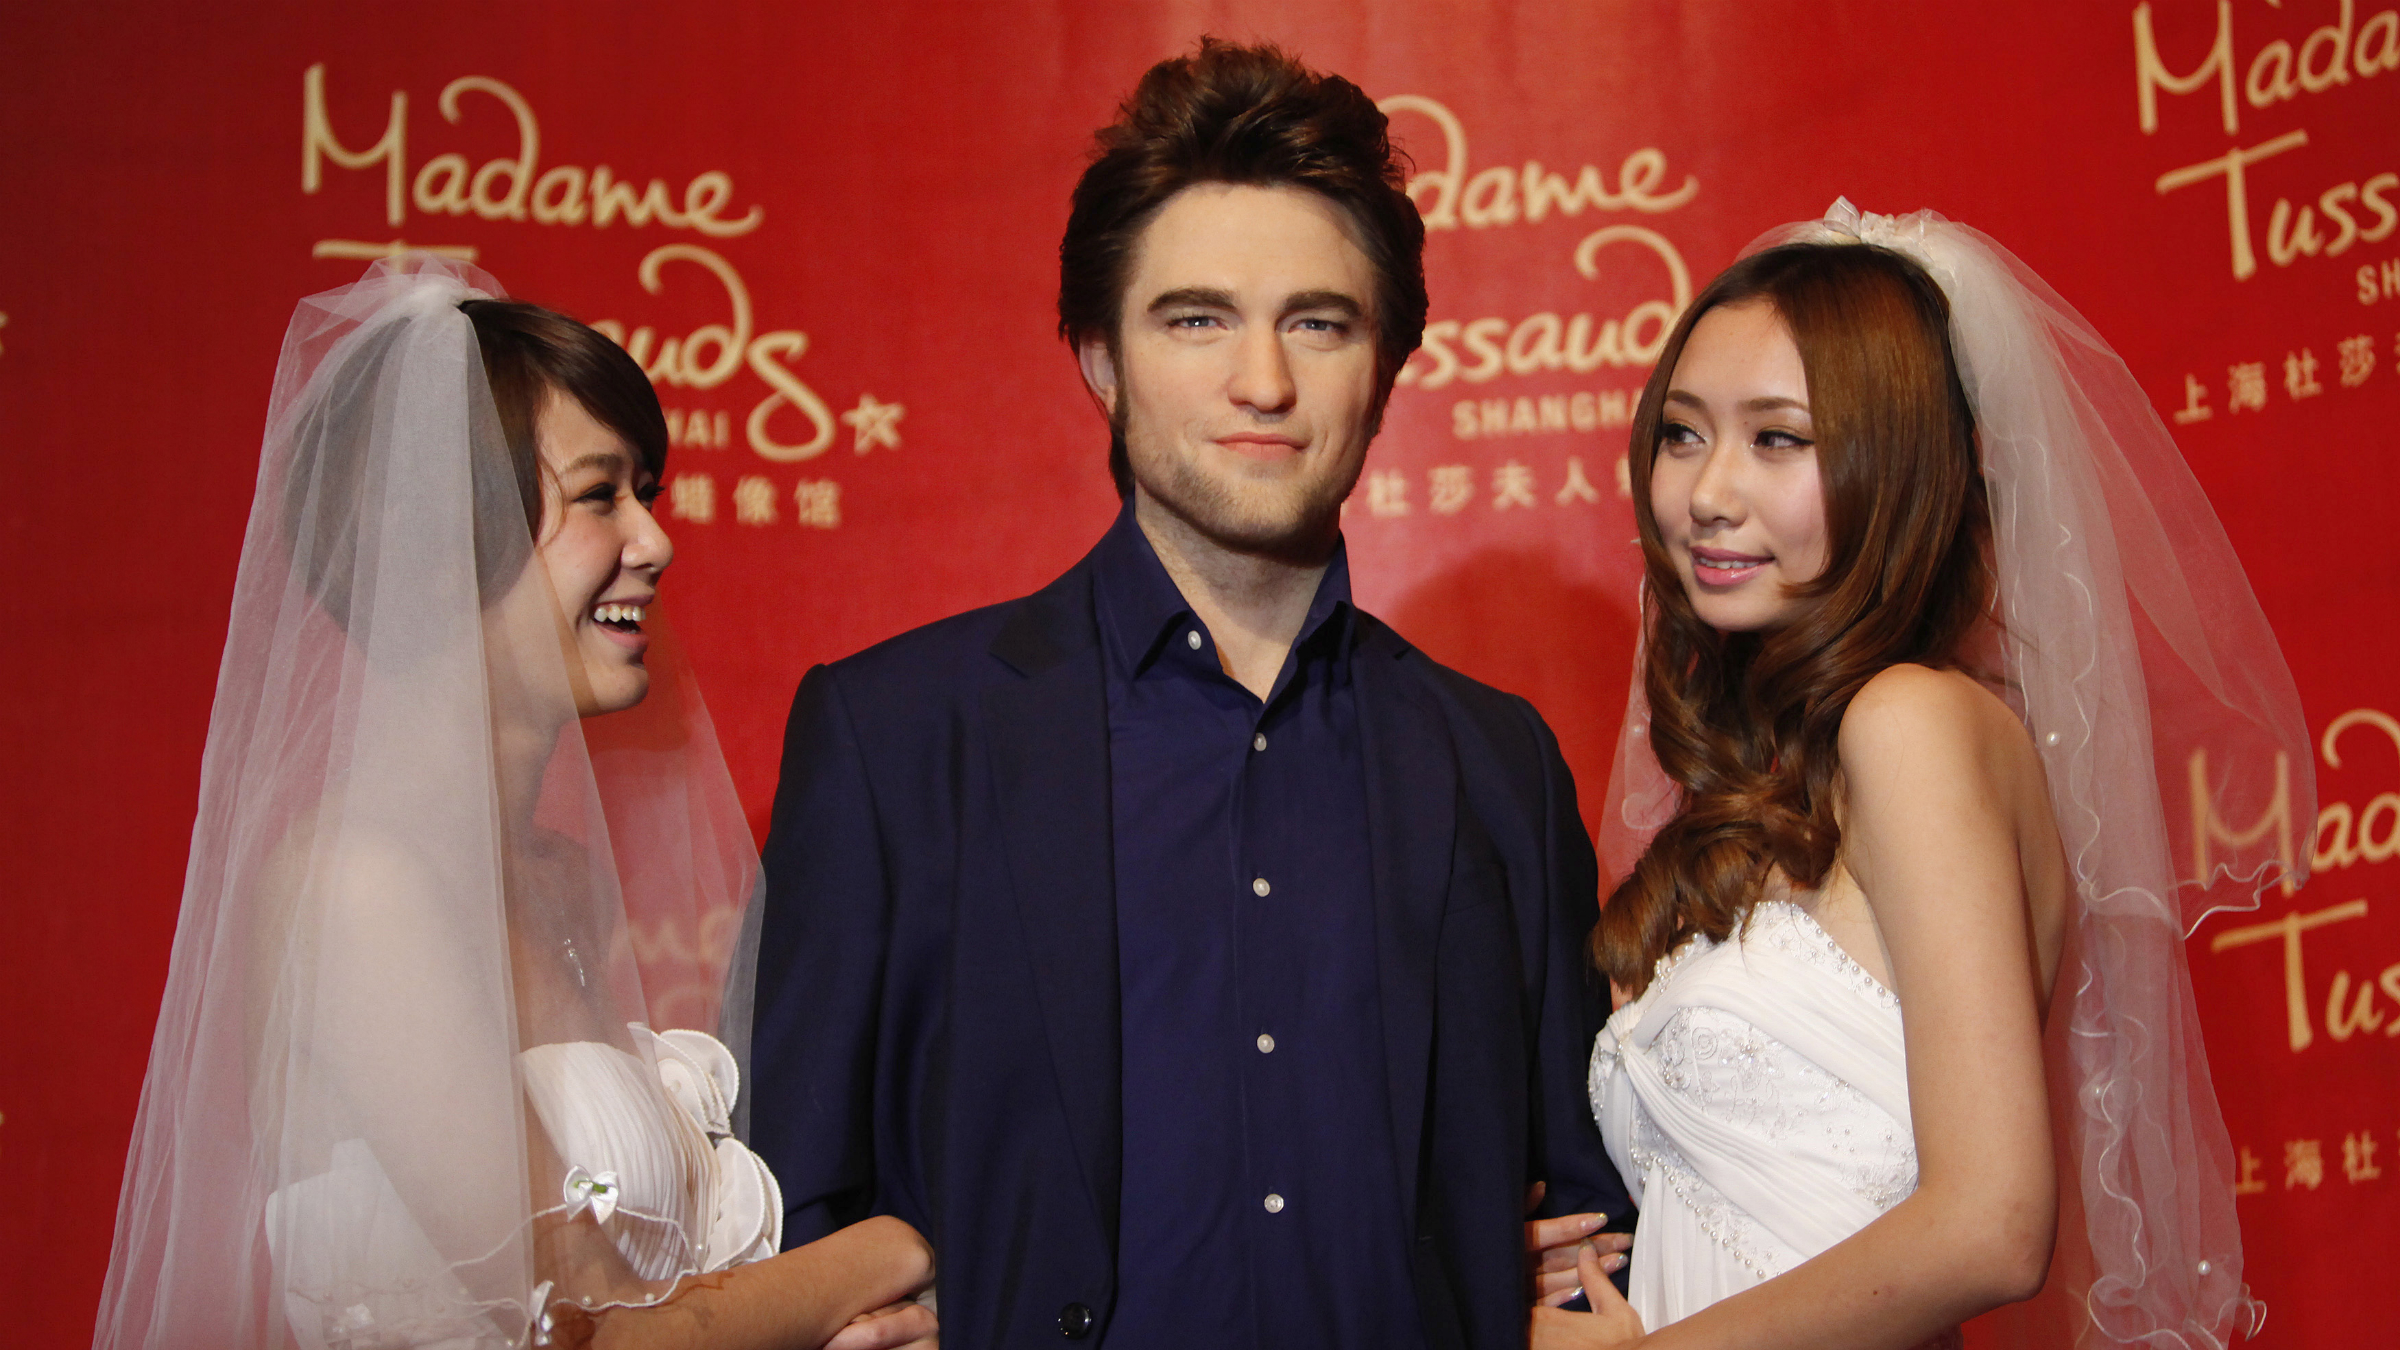 Models pose next to a wax statue of actor Robert Pattinson (C) at the Madame Tussauds Wax Museum in Shanghai December 1, 2011. REUTERS/Aly Song